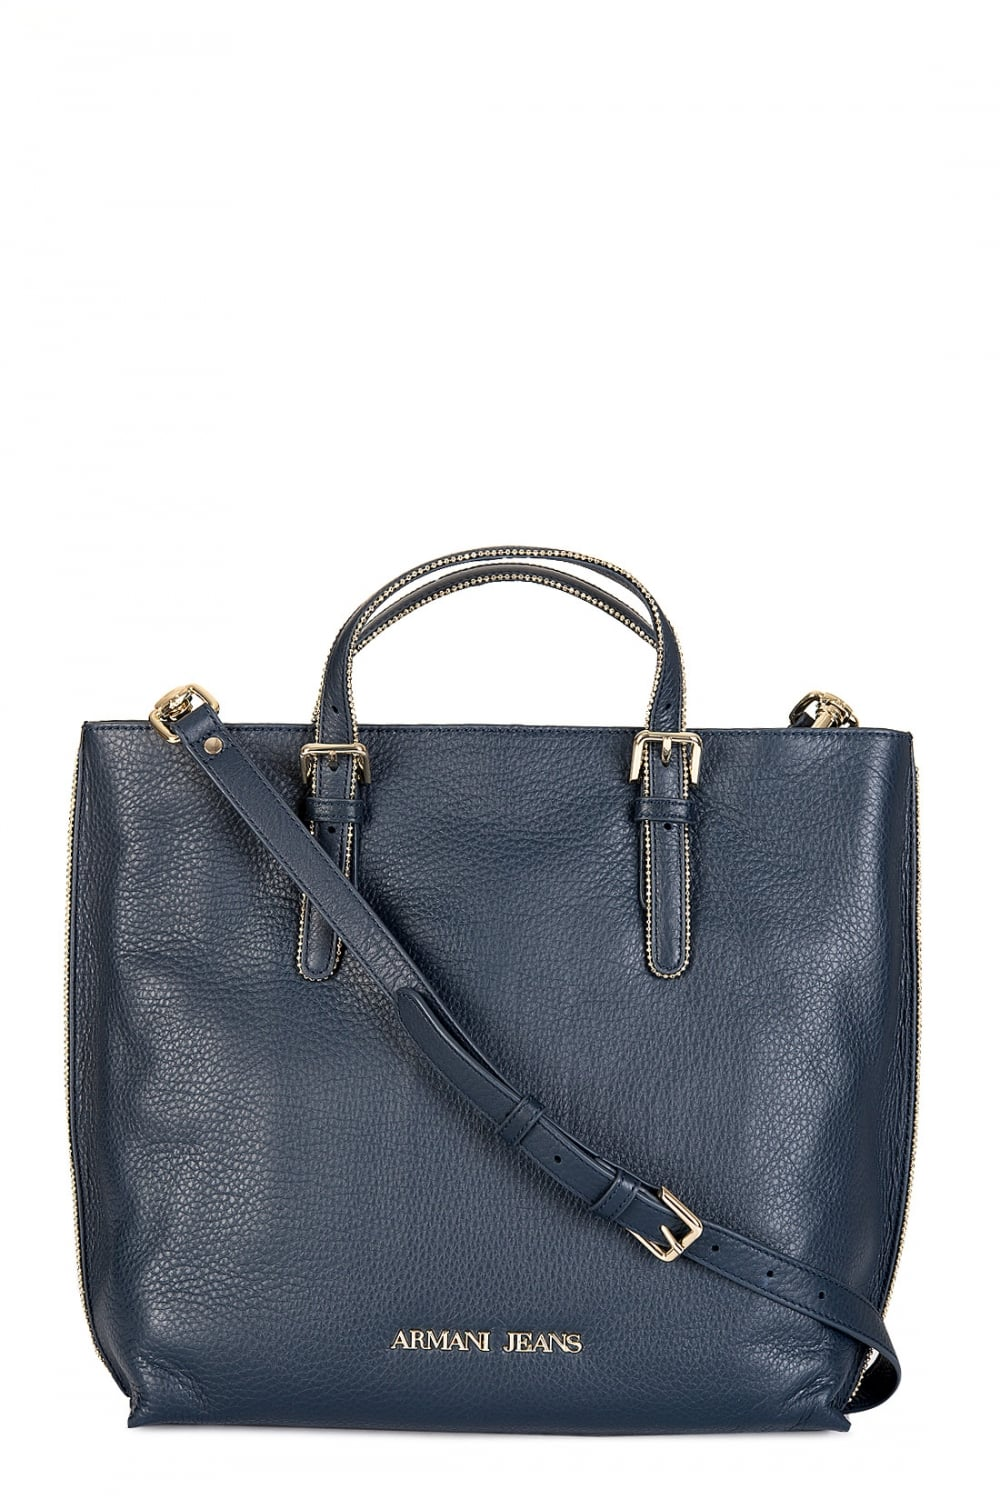 Armani Jeans Women s Tall Leather Tote Bag Navy